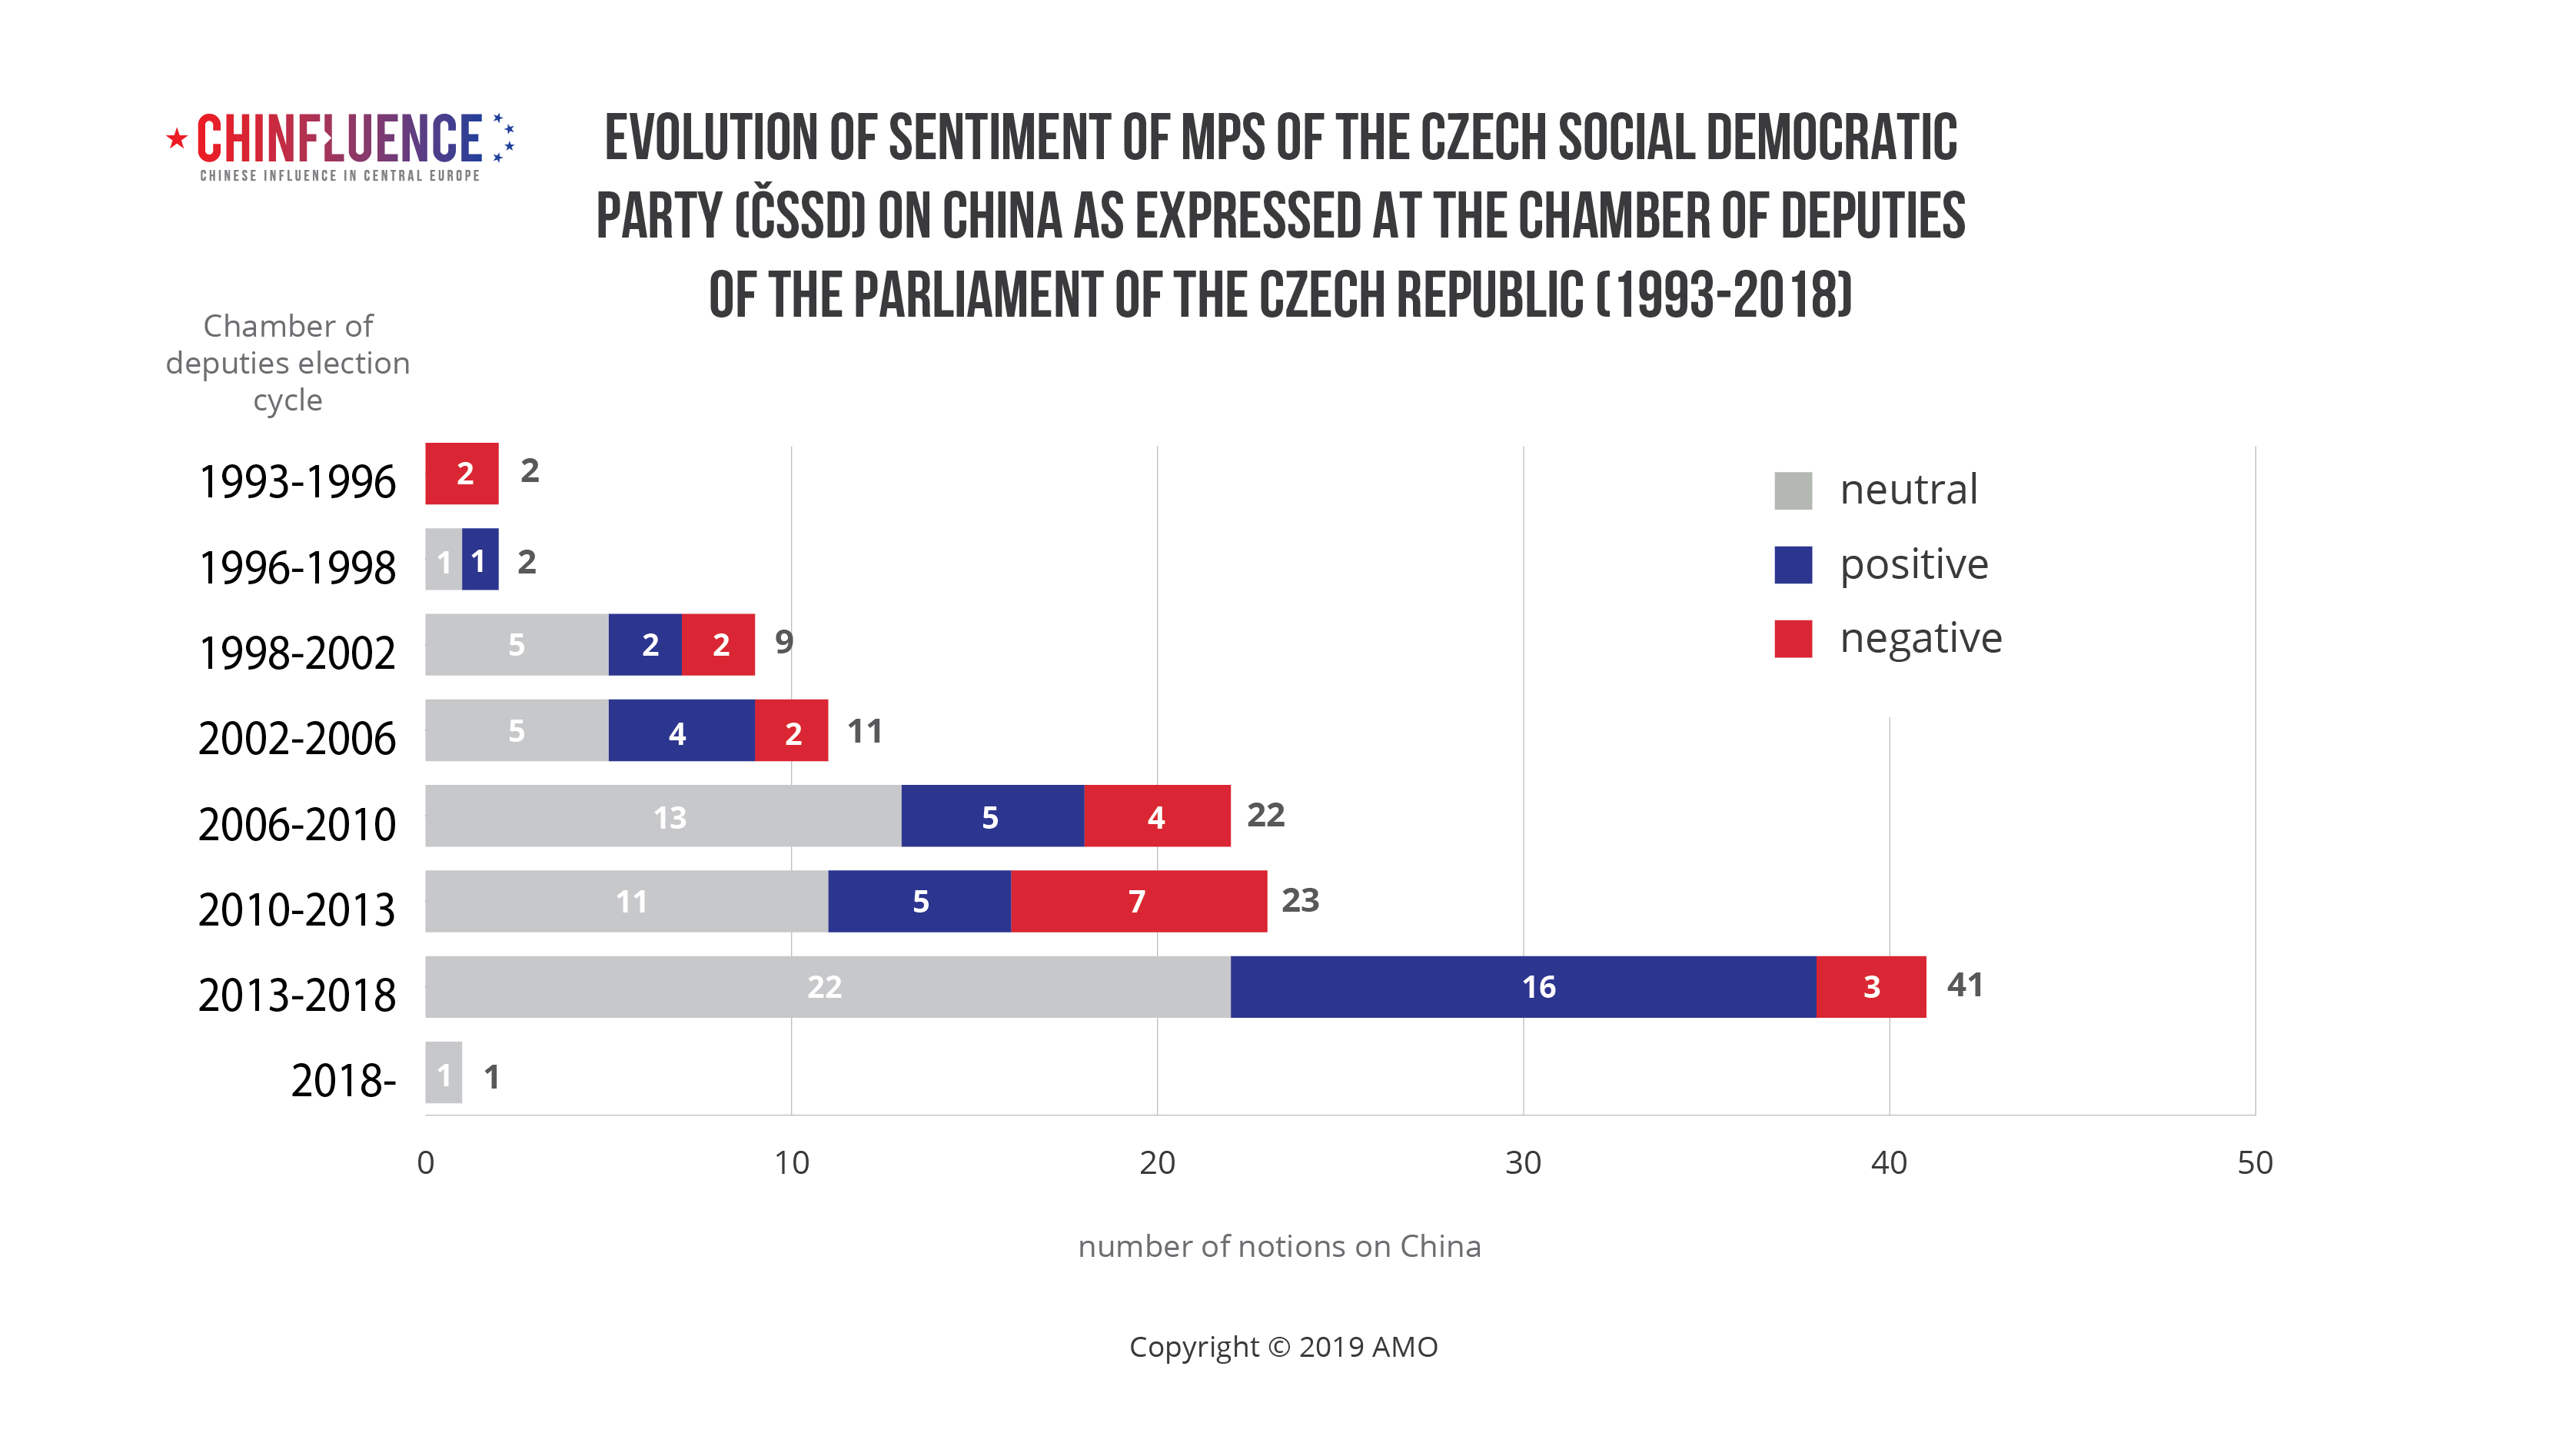 Evolution of sentiment of MPs of the Czech Social Democratic Party (CSSD) on China as expressed at the Chamber of Deputies of the Parliament of the Czech Republic (1993-2018)